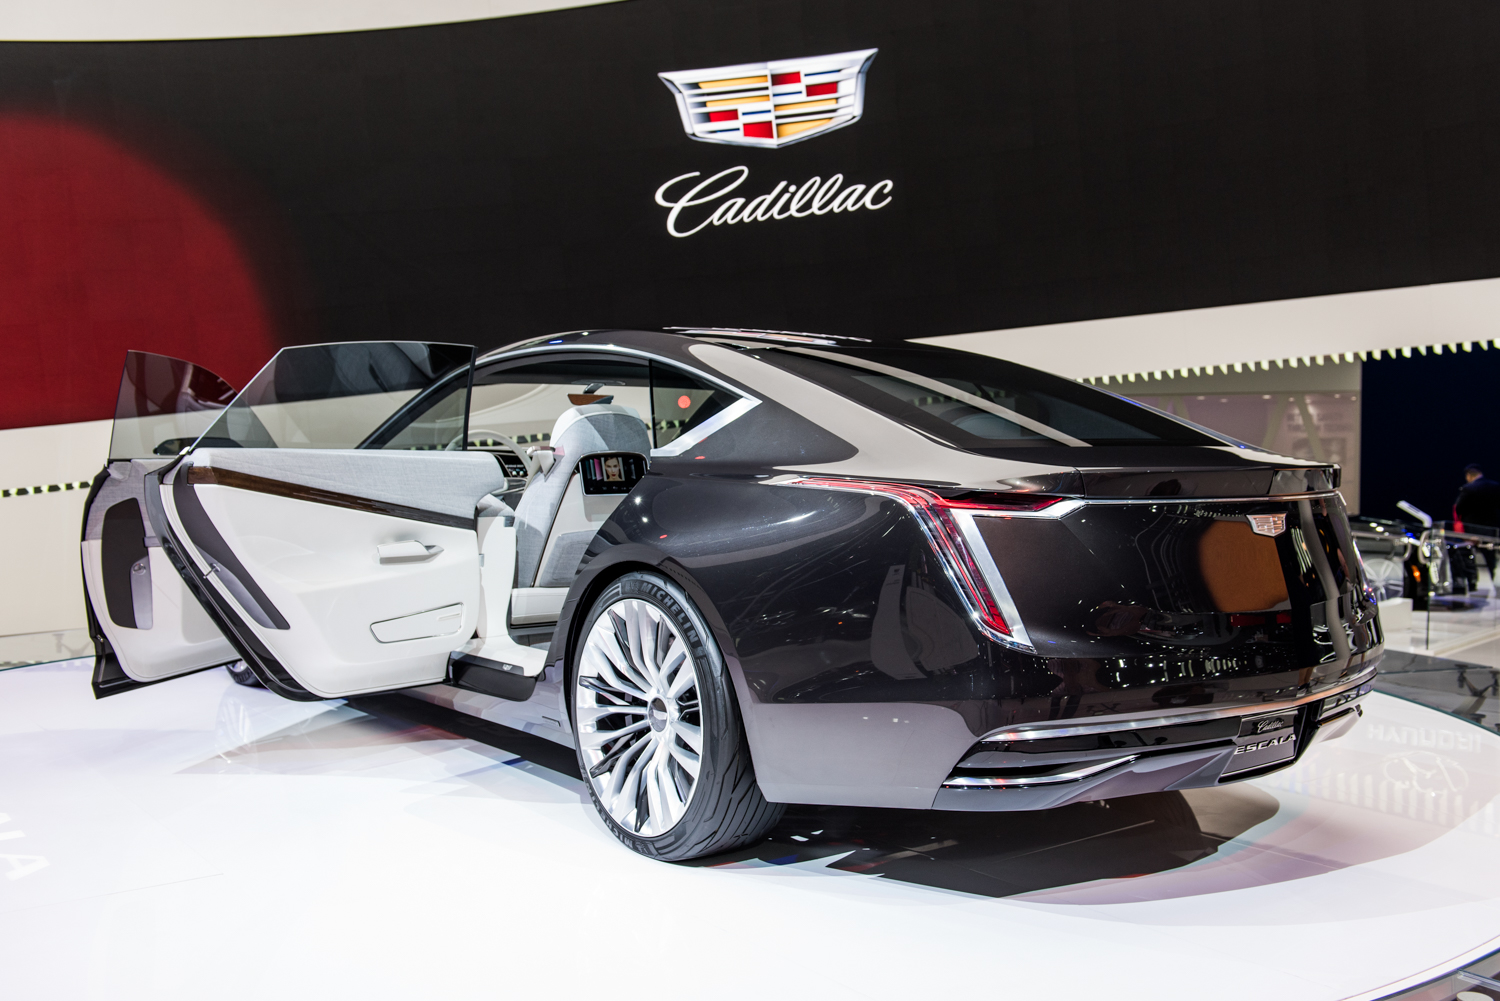 Upcoming Cadillac Flagship Could Be An EV Launching In 2021